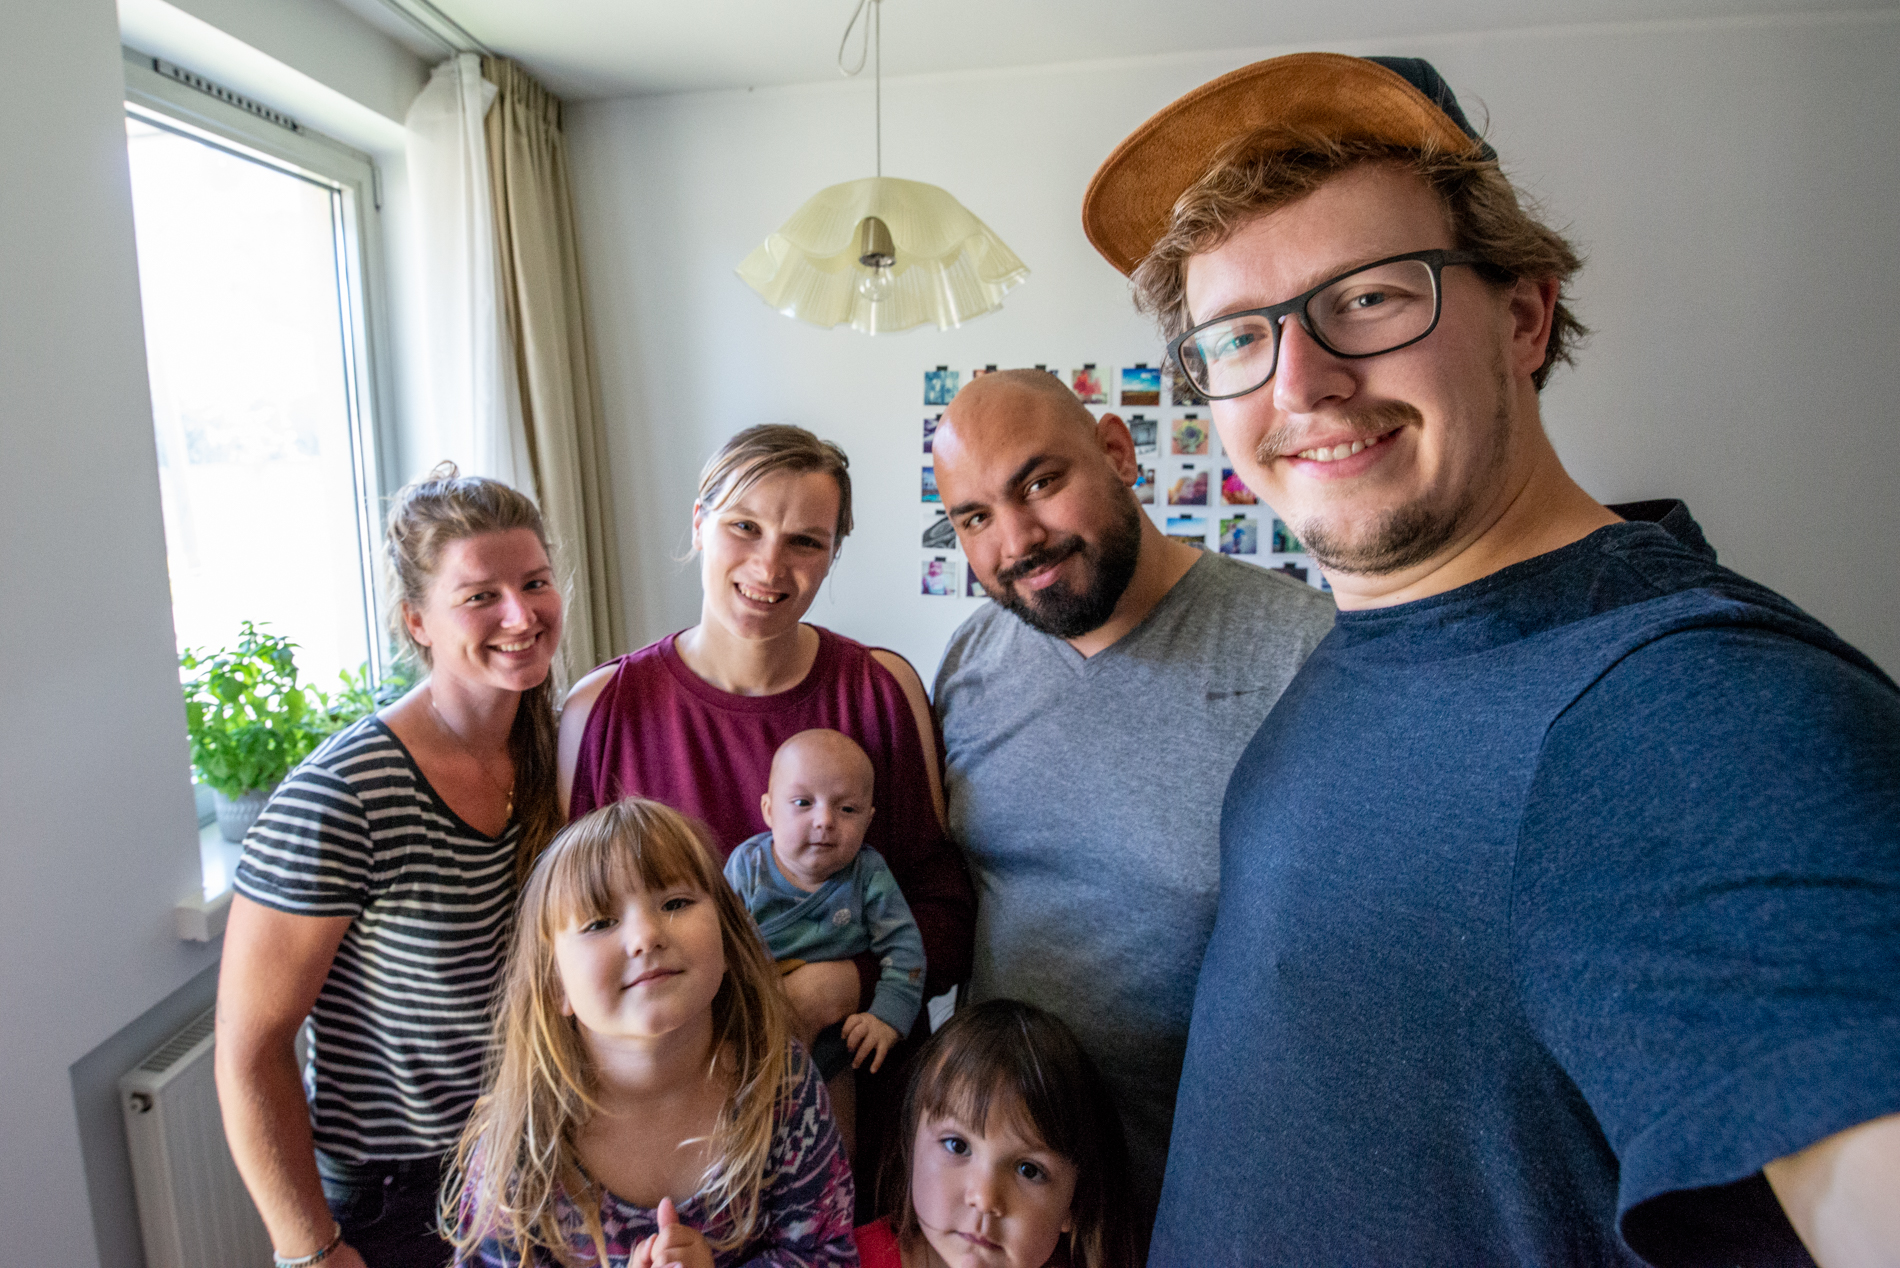 An American family living in Estonia who took Ellis&me in their home.